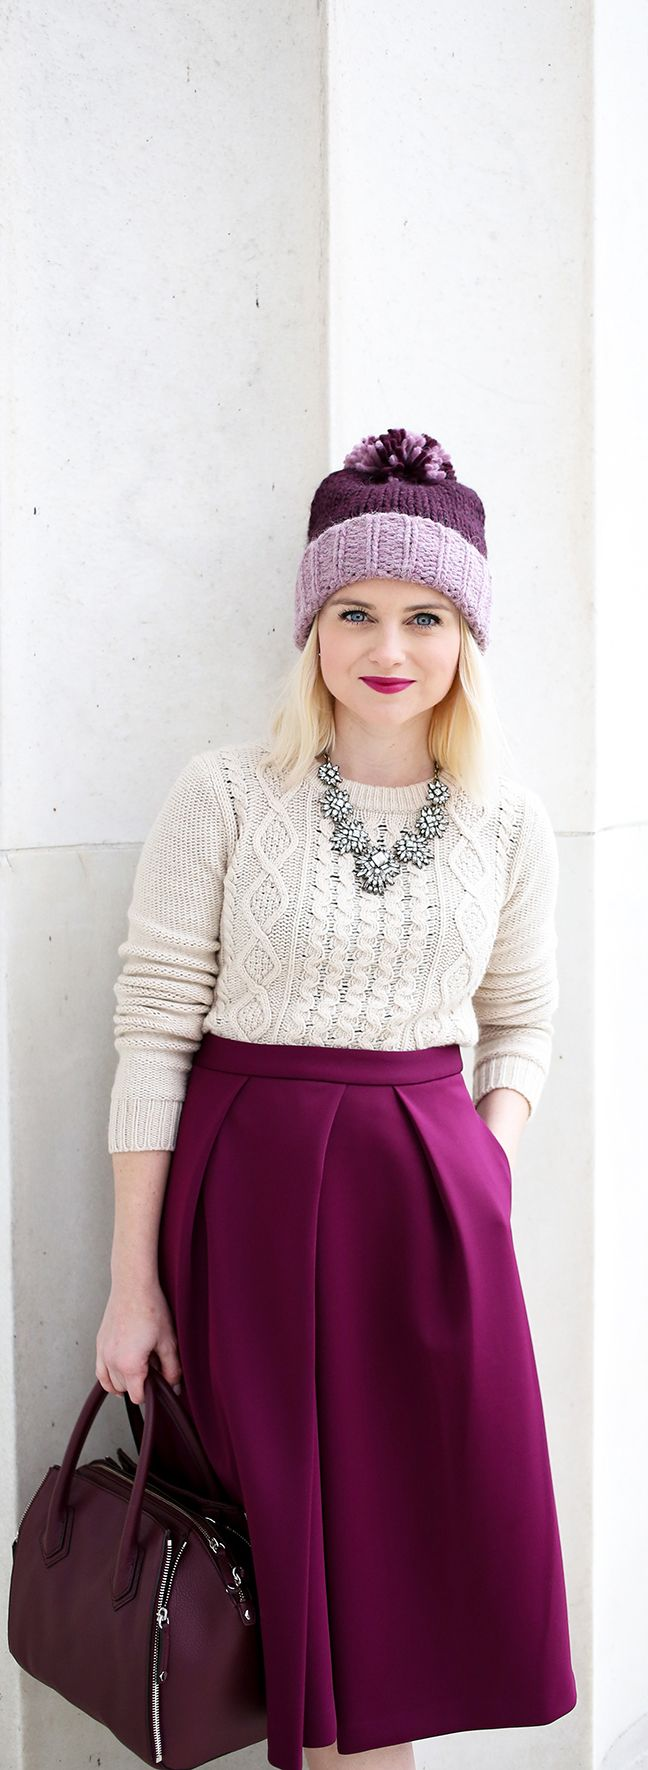 Best Places To Take Photos In Washington, DC - Lincoln Memorial Purple Beanie Hat For Winter - Midi Skirt Styling For Petite Girls - Poor Little It Girl